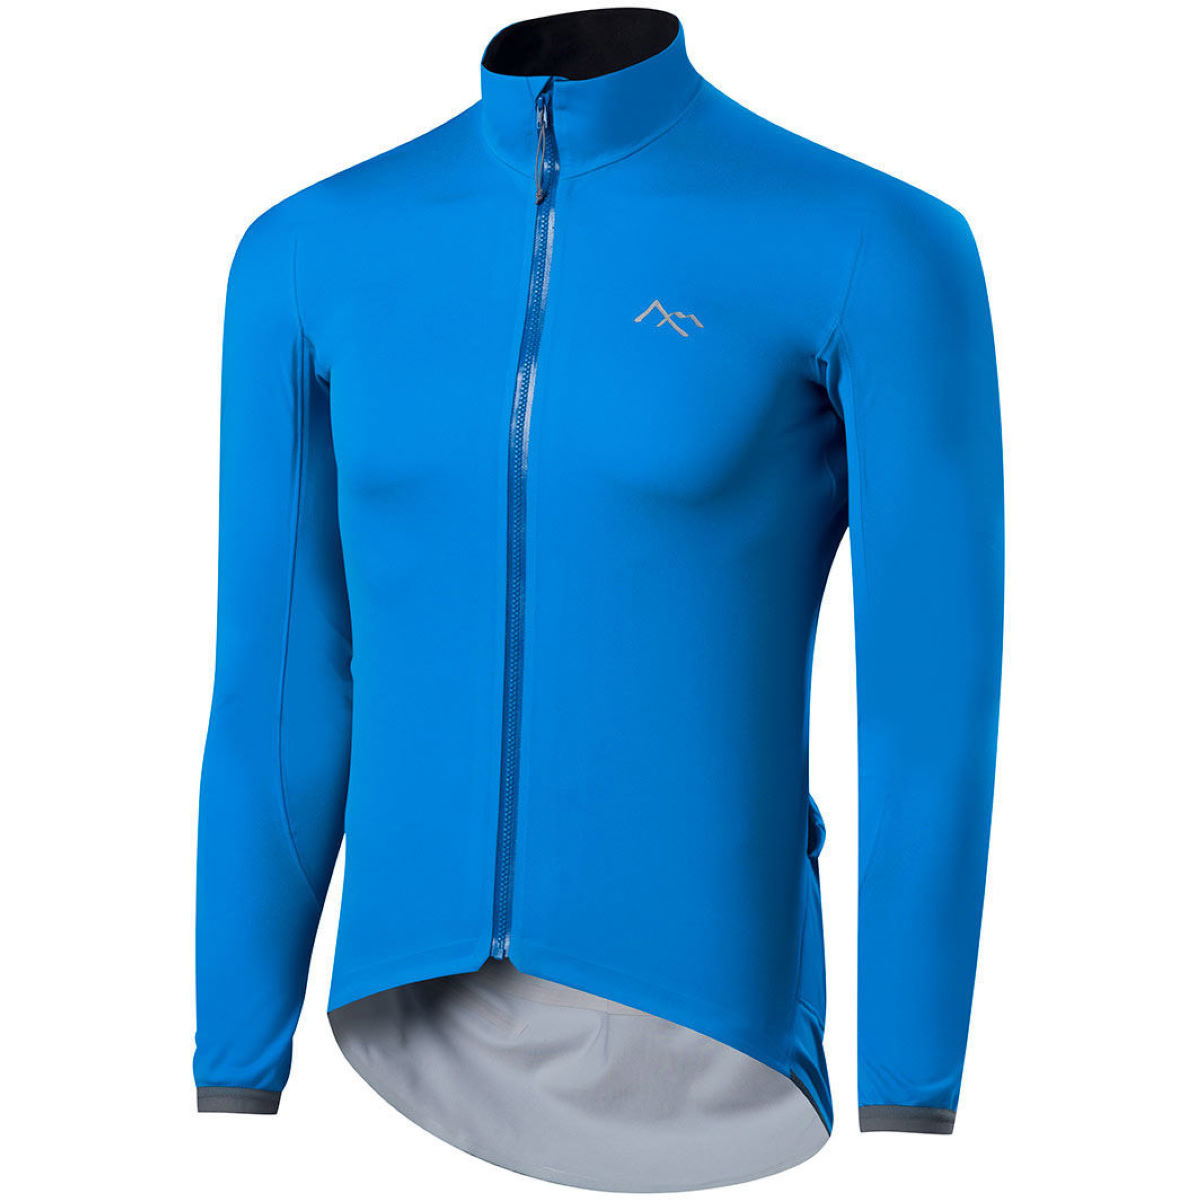 Maillot 7Mesh Corsa Windstopper Softshell - L Blue Ox Vestes